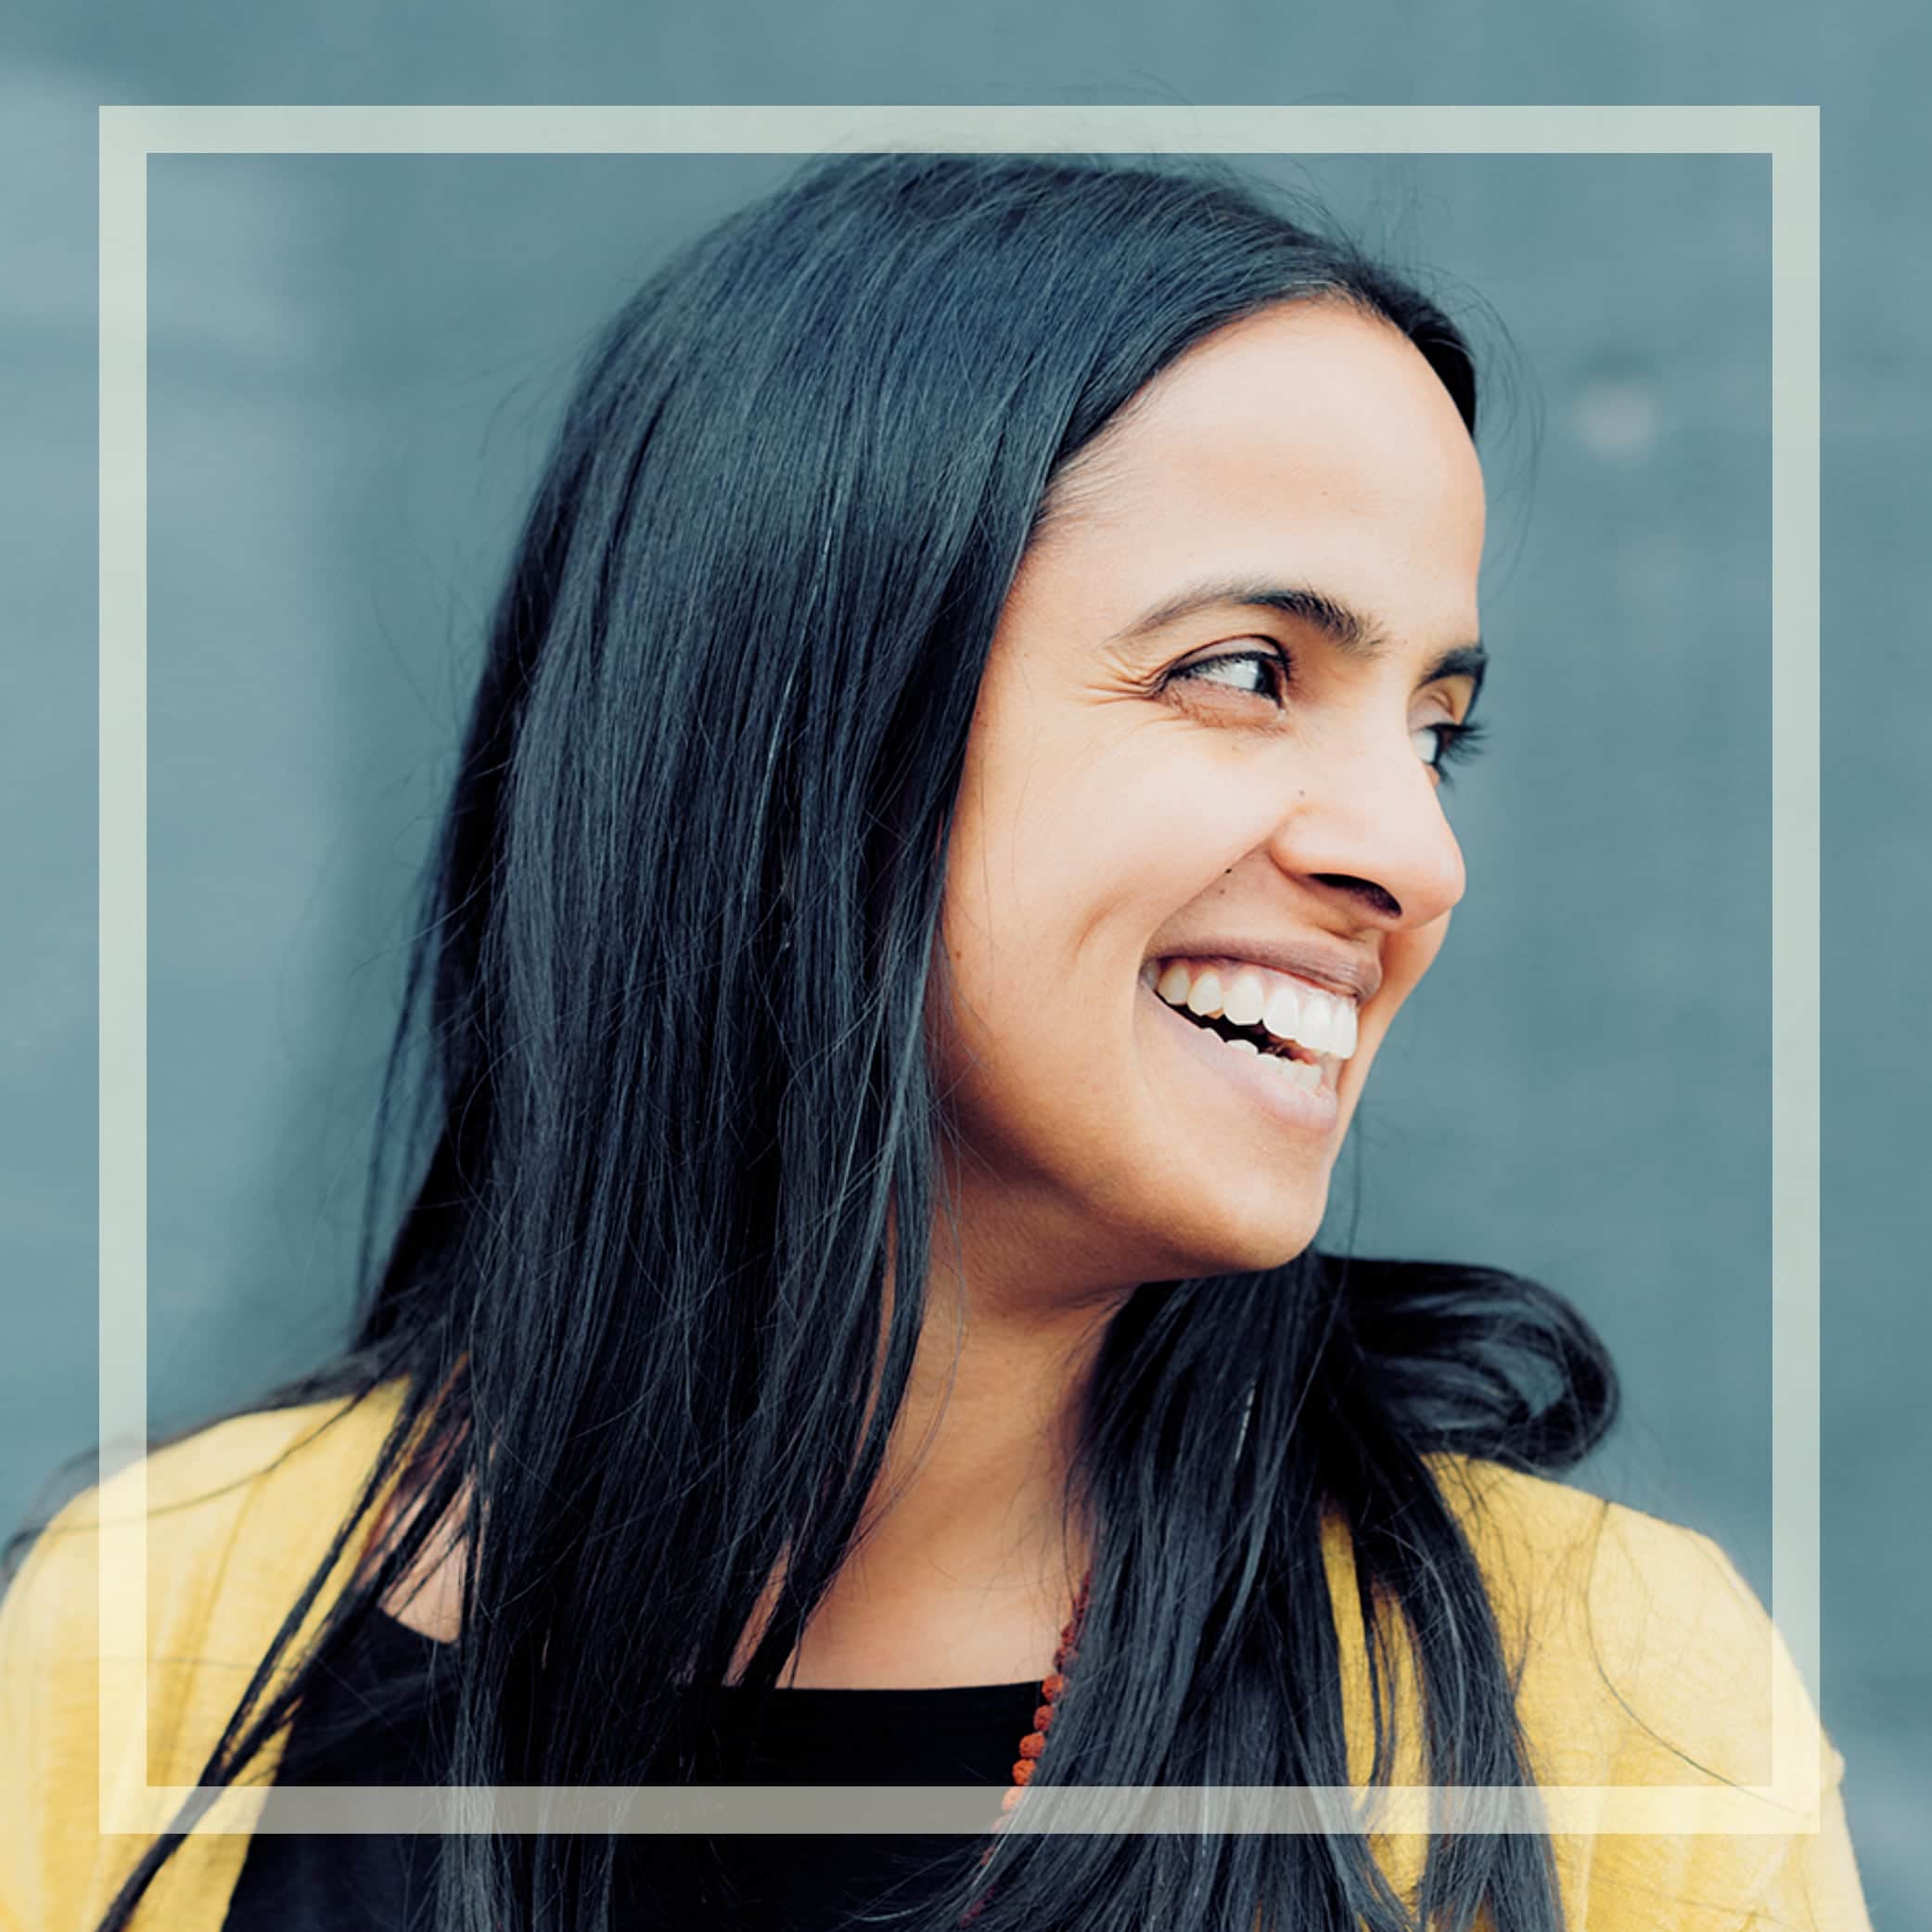 011 - Can the Mindfulness Movement & Social Justice Co-exist?  with Farheen HaQ 2